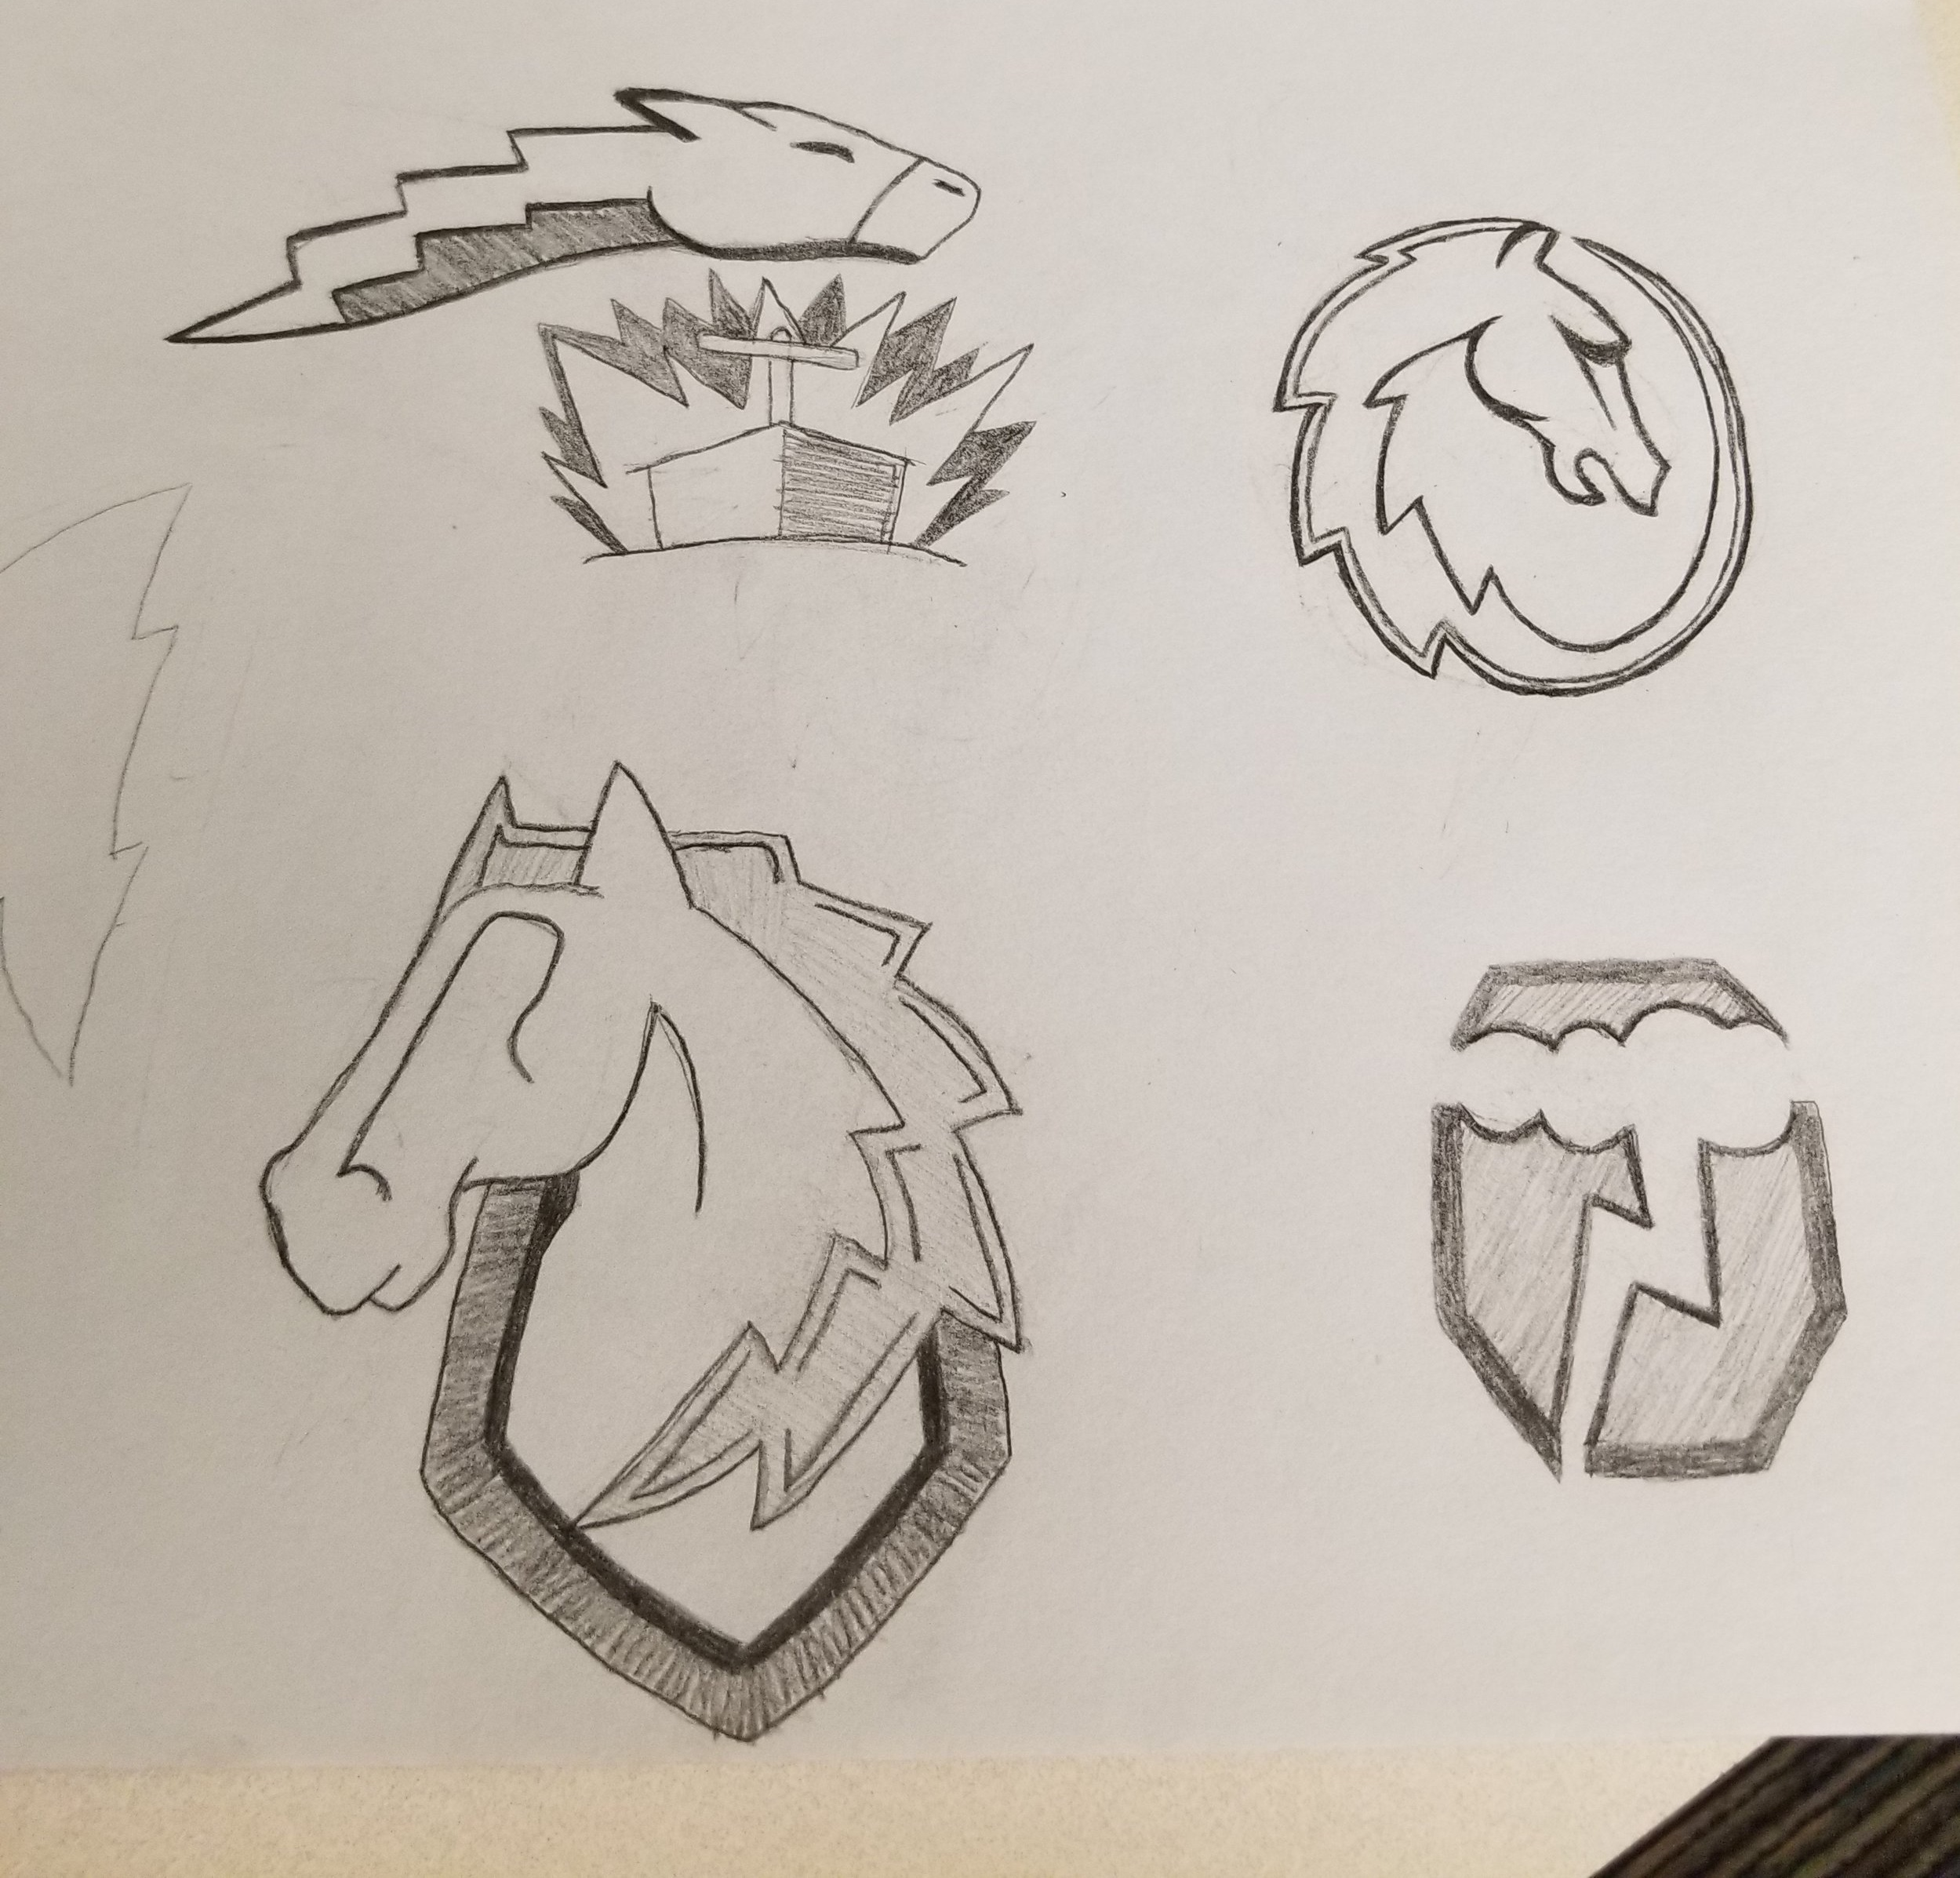 Derby City Thunder Sketches